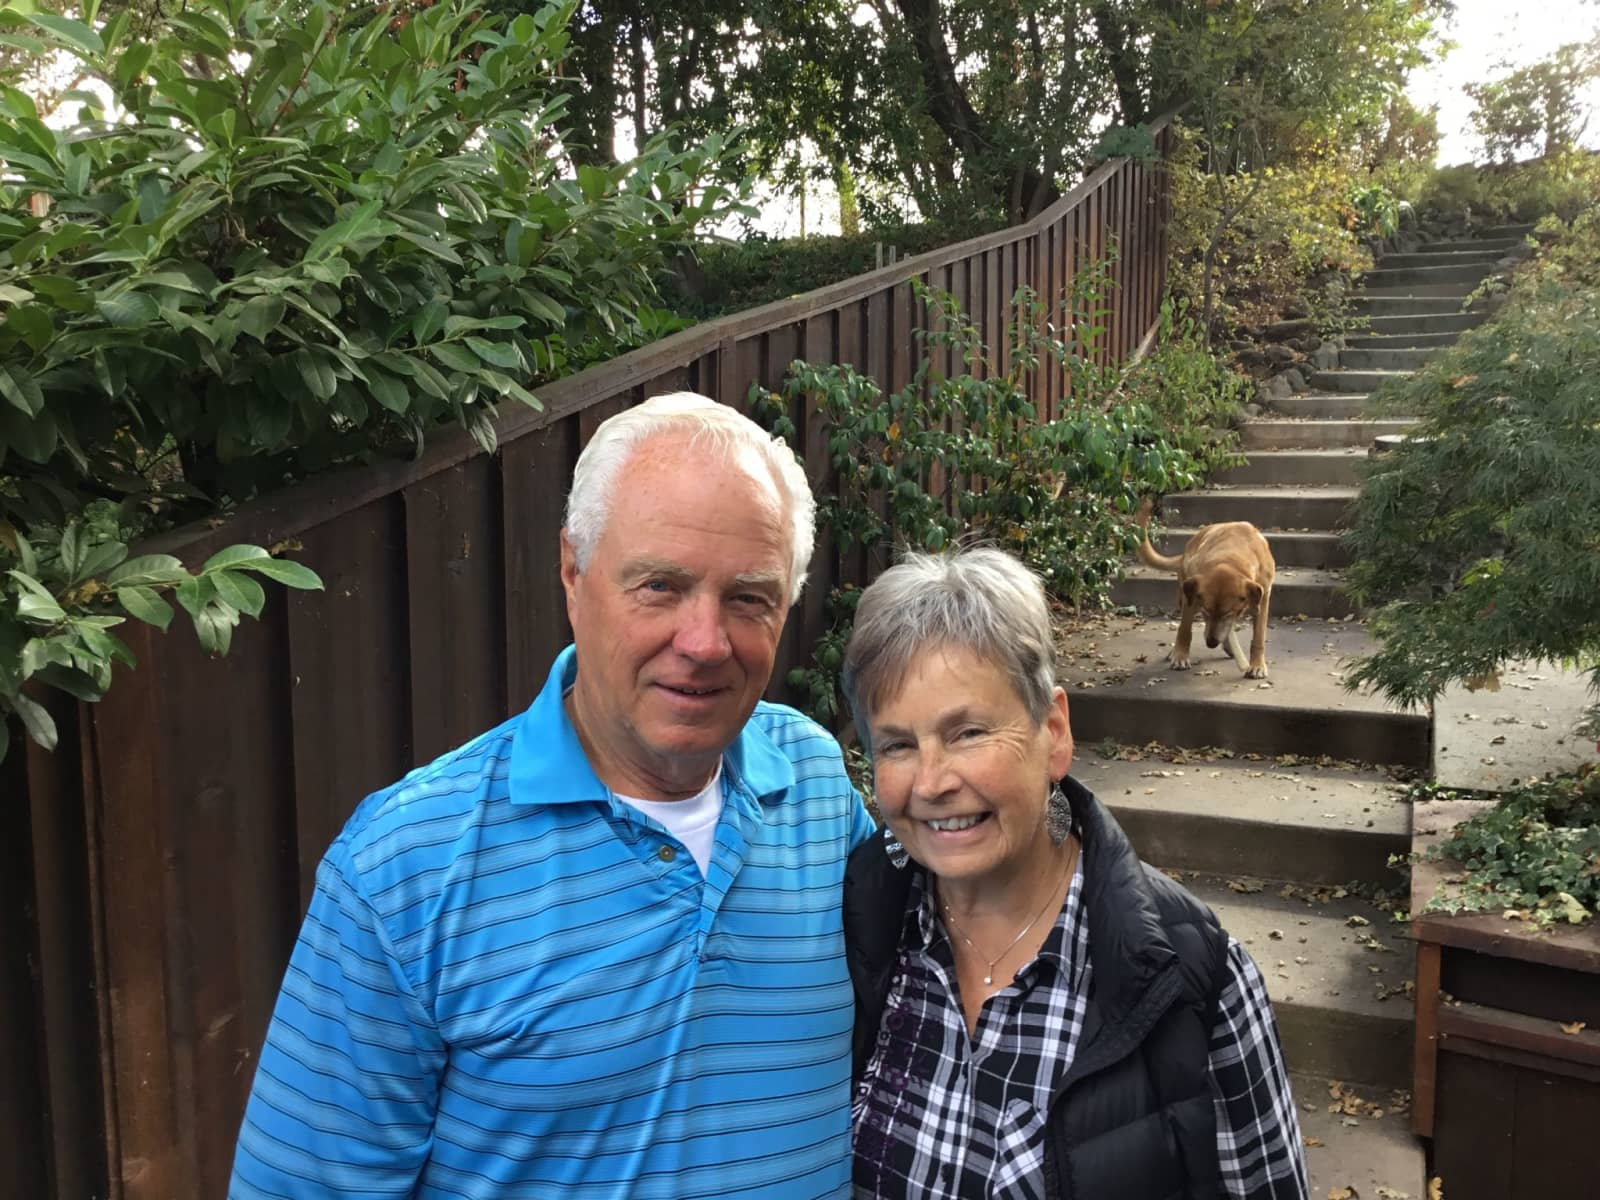 Gale & Larry from San Francisco, California, United States